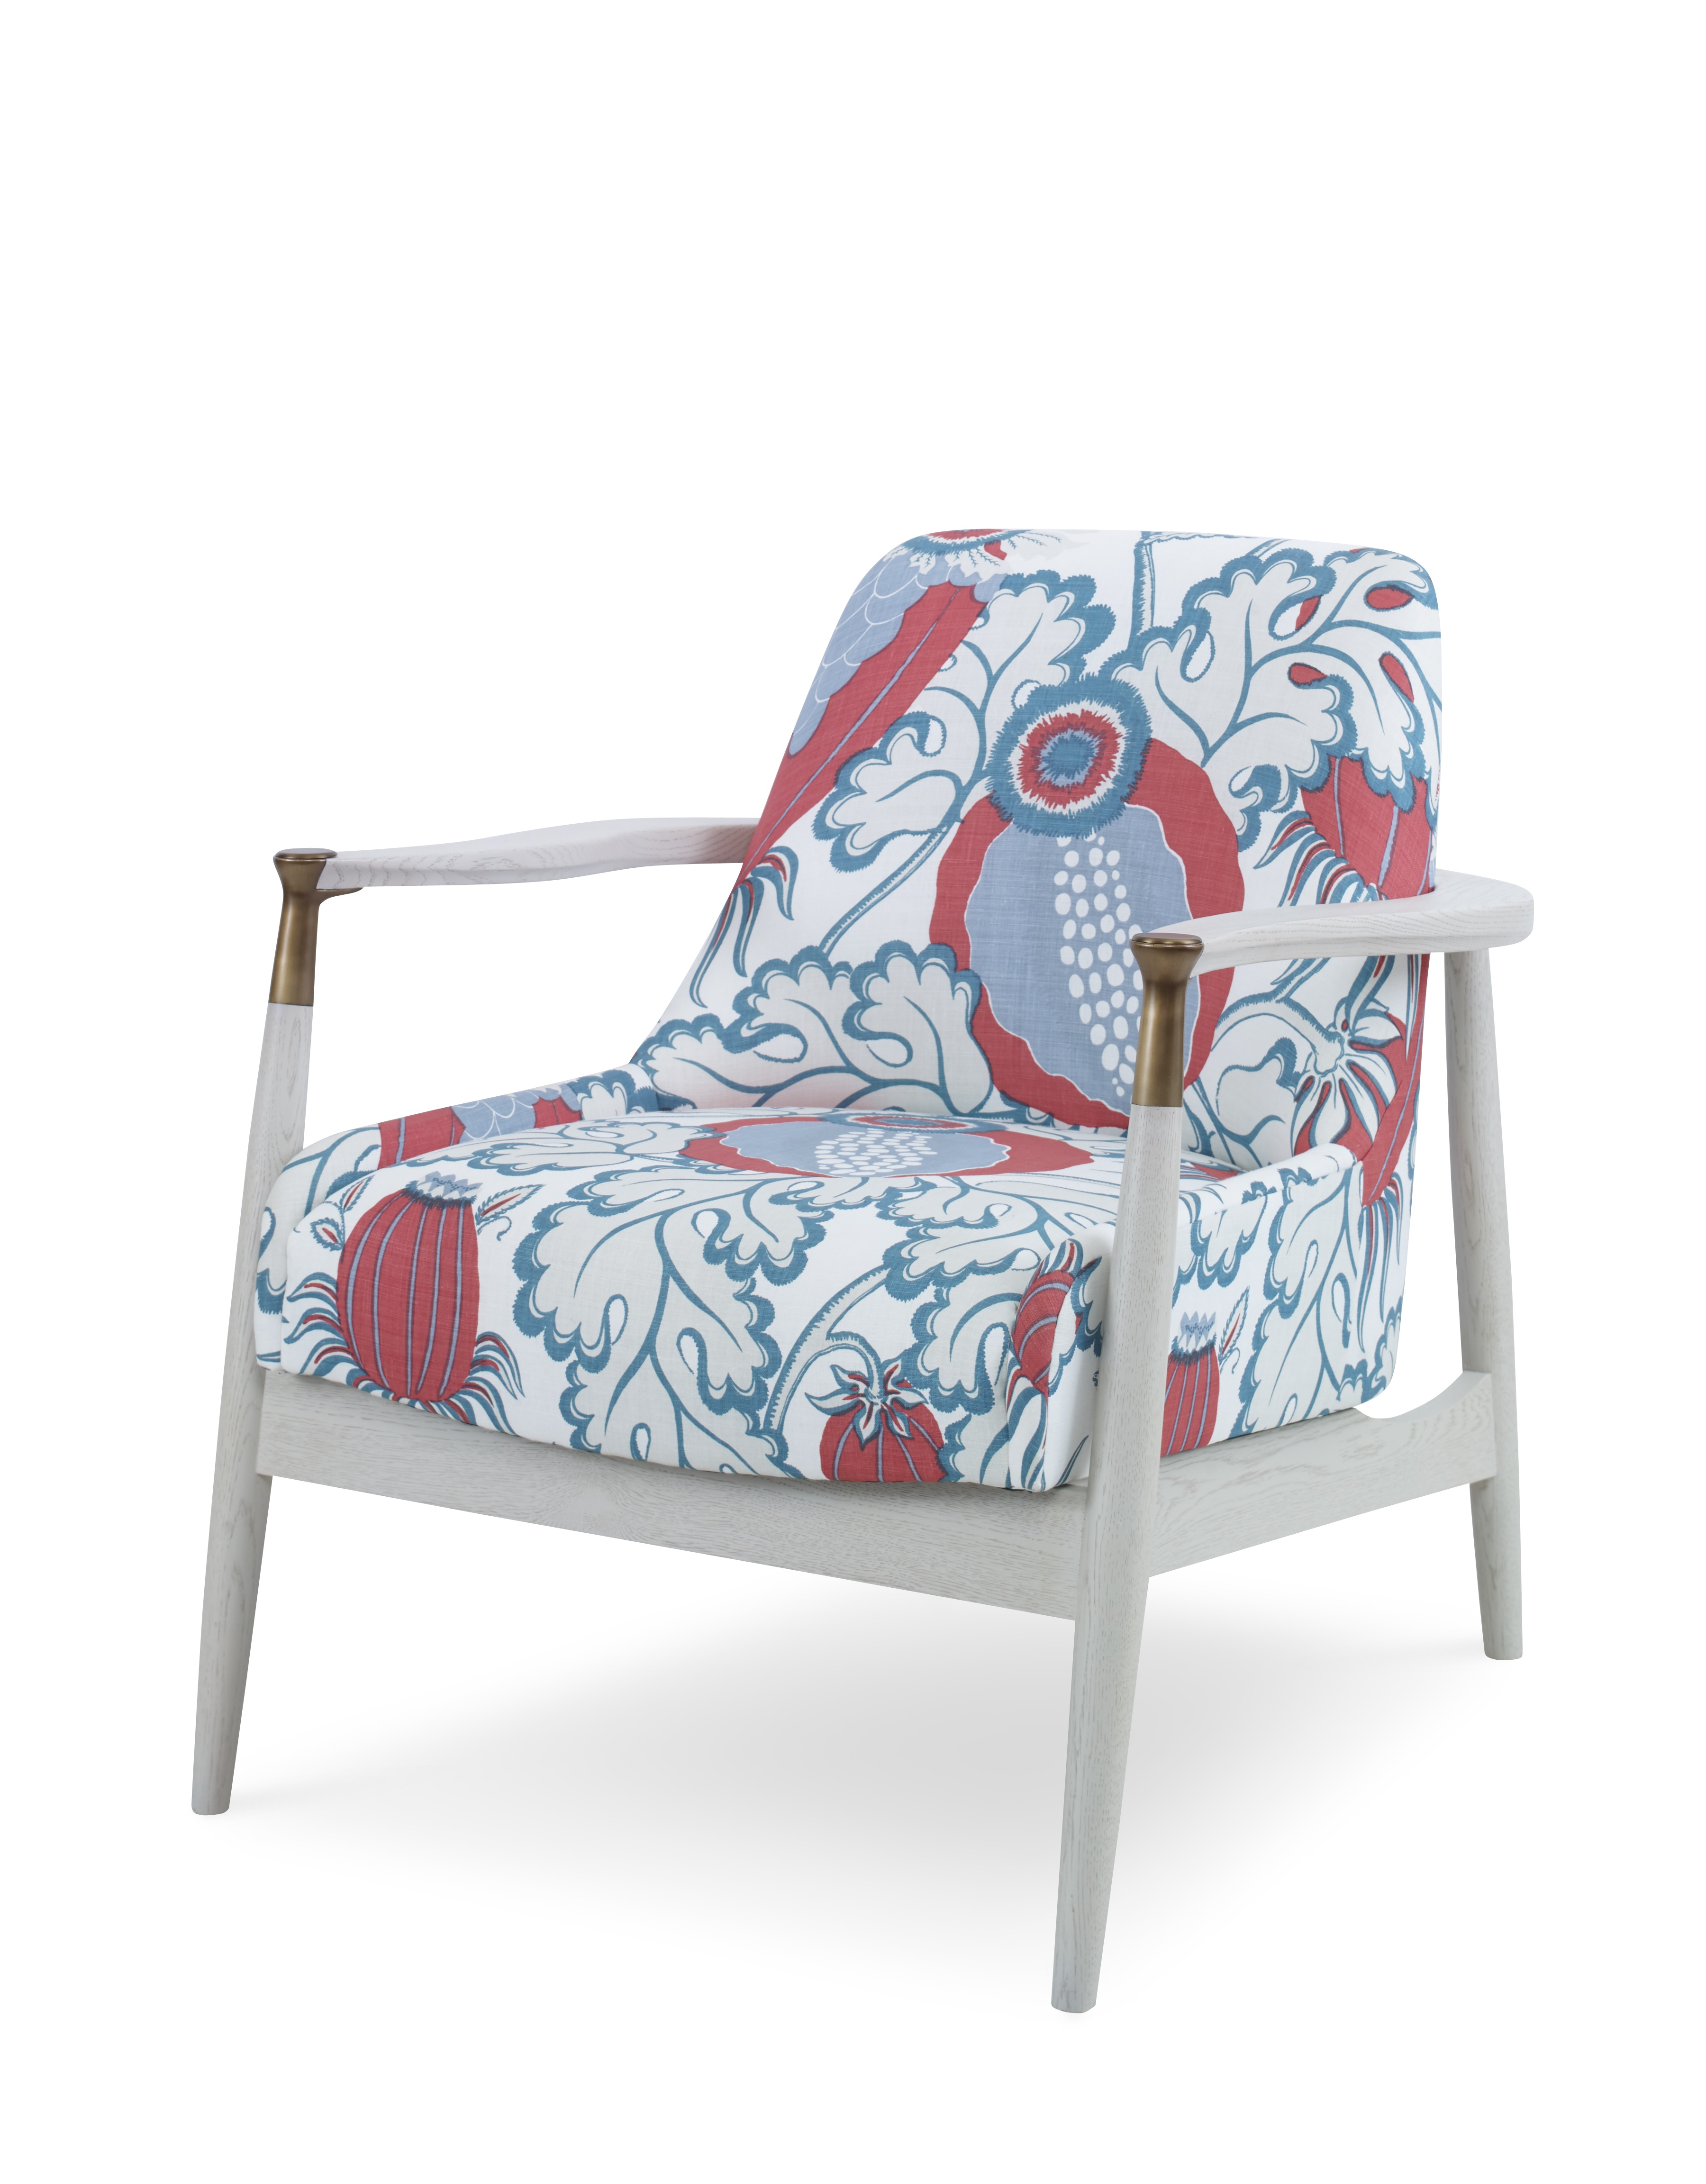 Julian Chichester Fig chair